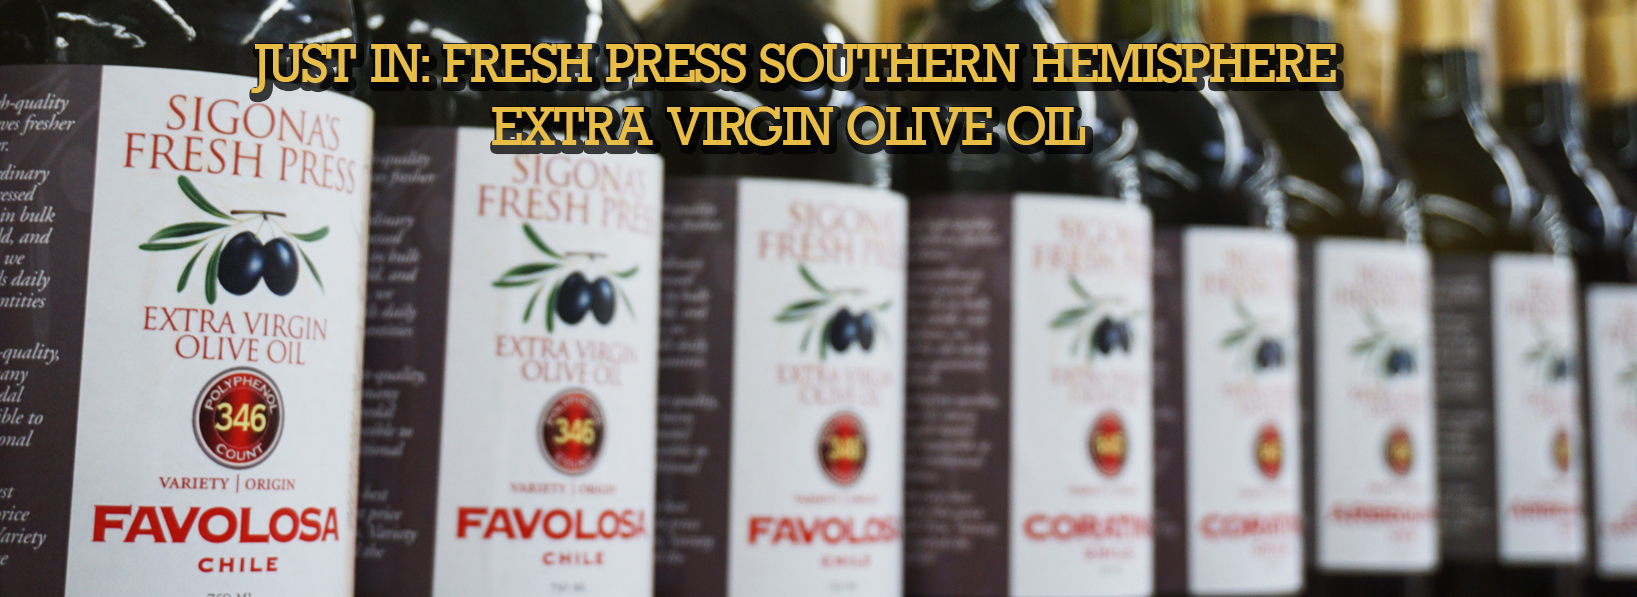 JUST IN SOUTHERN HEMISPHERE OILS